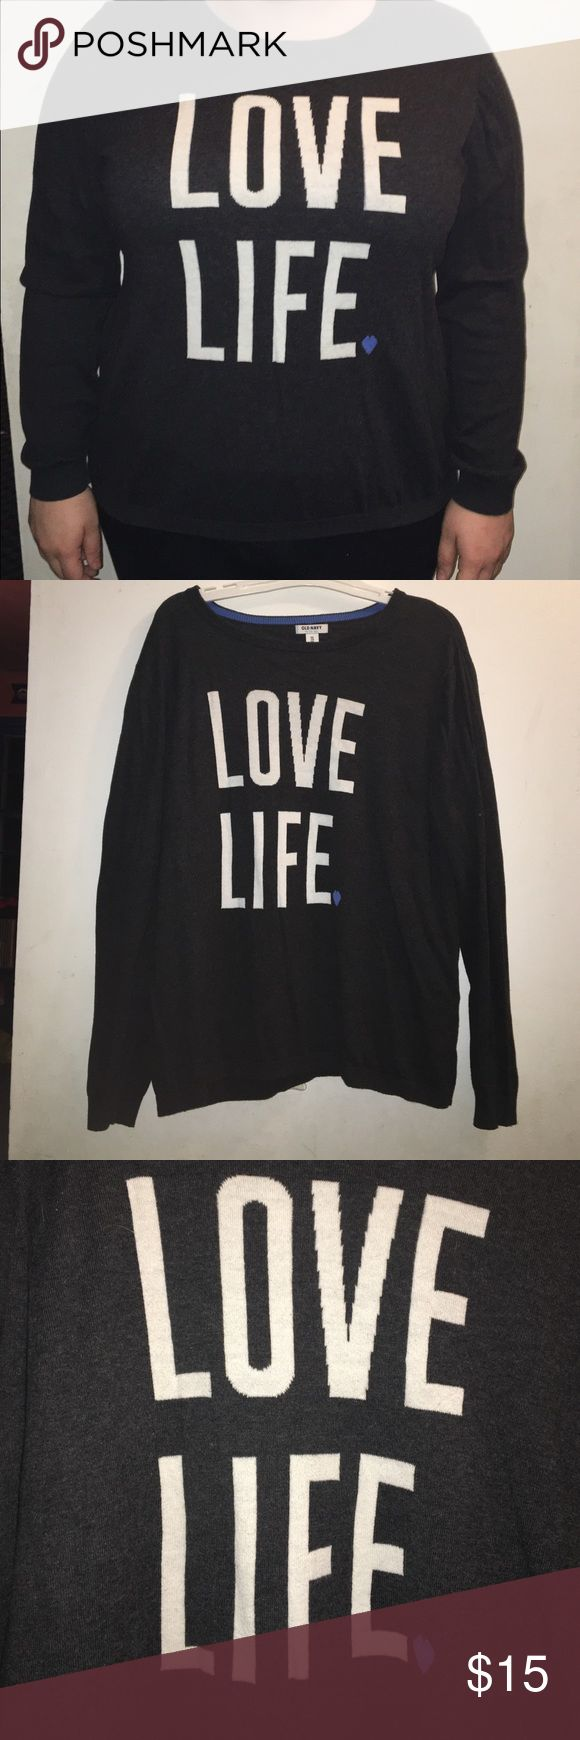 Love Life Sweater This Old Navy sweater is so soft and comfortable. Good for winter and it's also a little light Old Navy Sweaters Crew & Scoop Necks